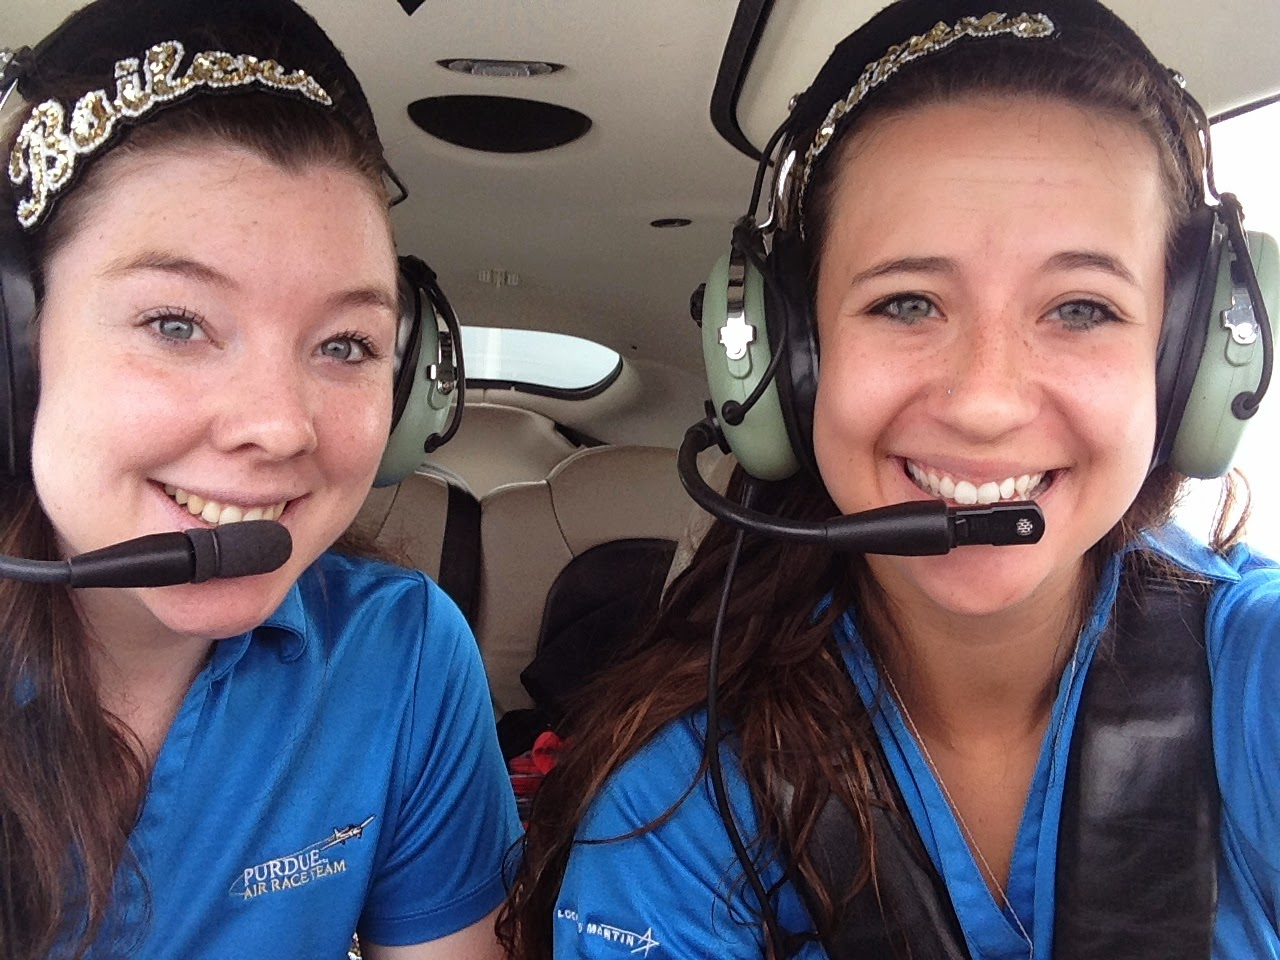 the girls wings blog girls wings final essay 07 30 2014 hi everyone this last month has been crazy busy earlier in i participated in the women s air race classic